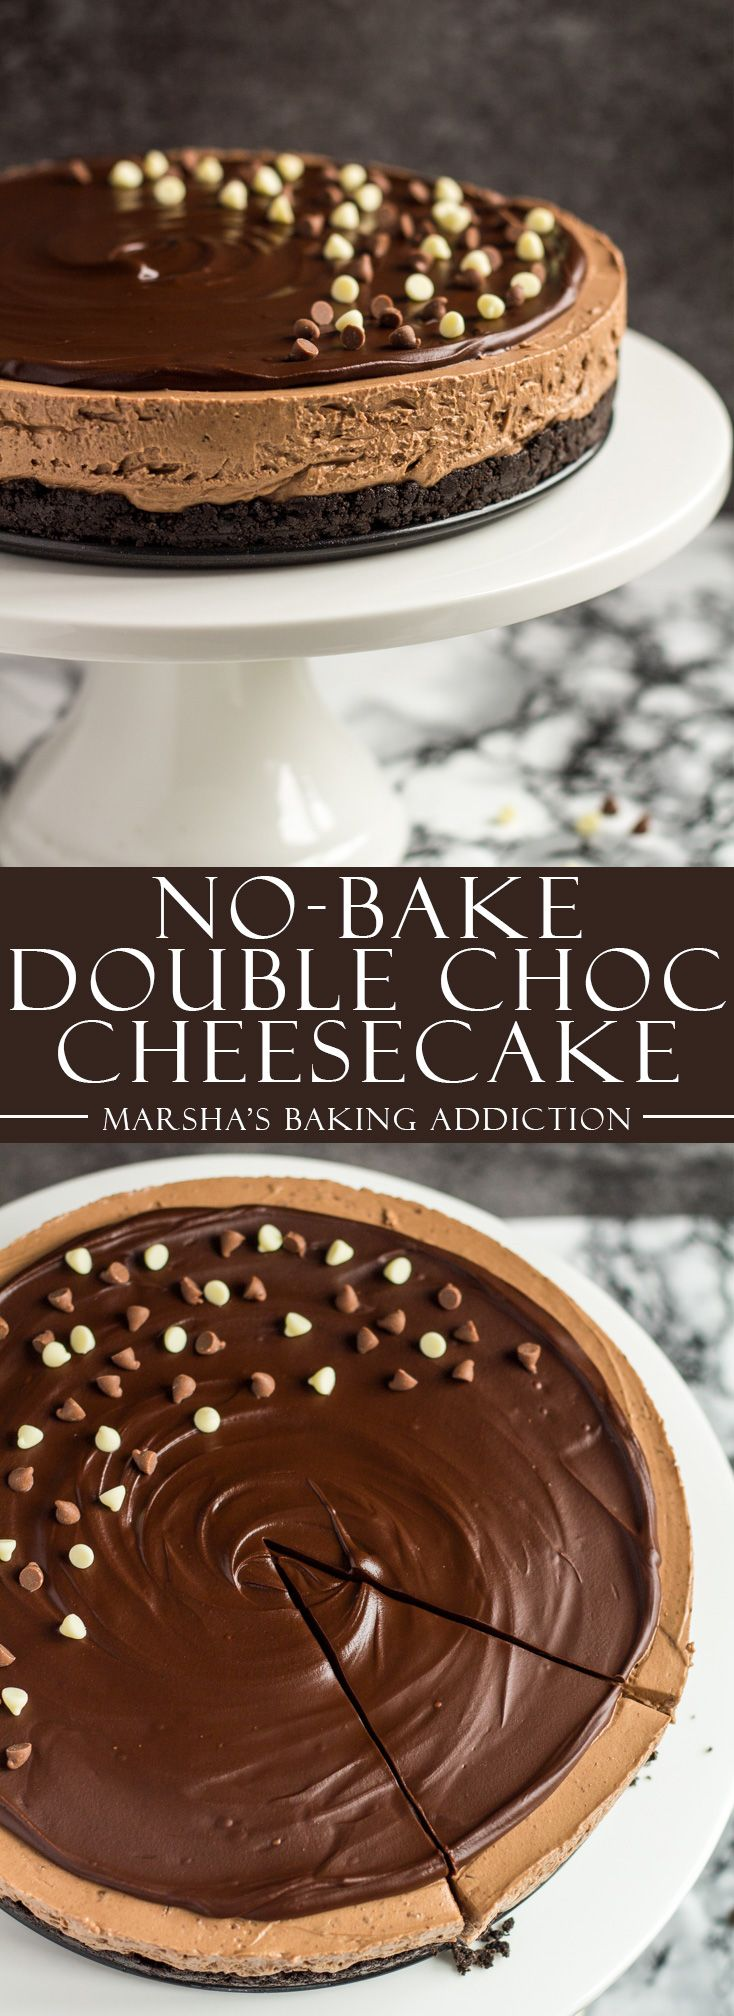 No-Bake Double Chocolate Cheesecake | marshasbakingaddiction.com @marshasbakeblog